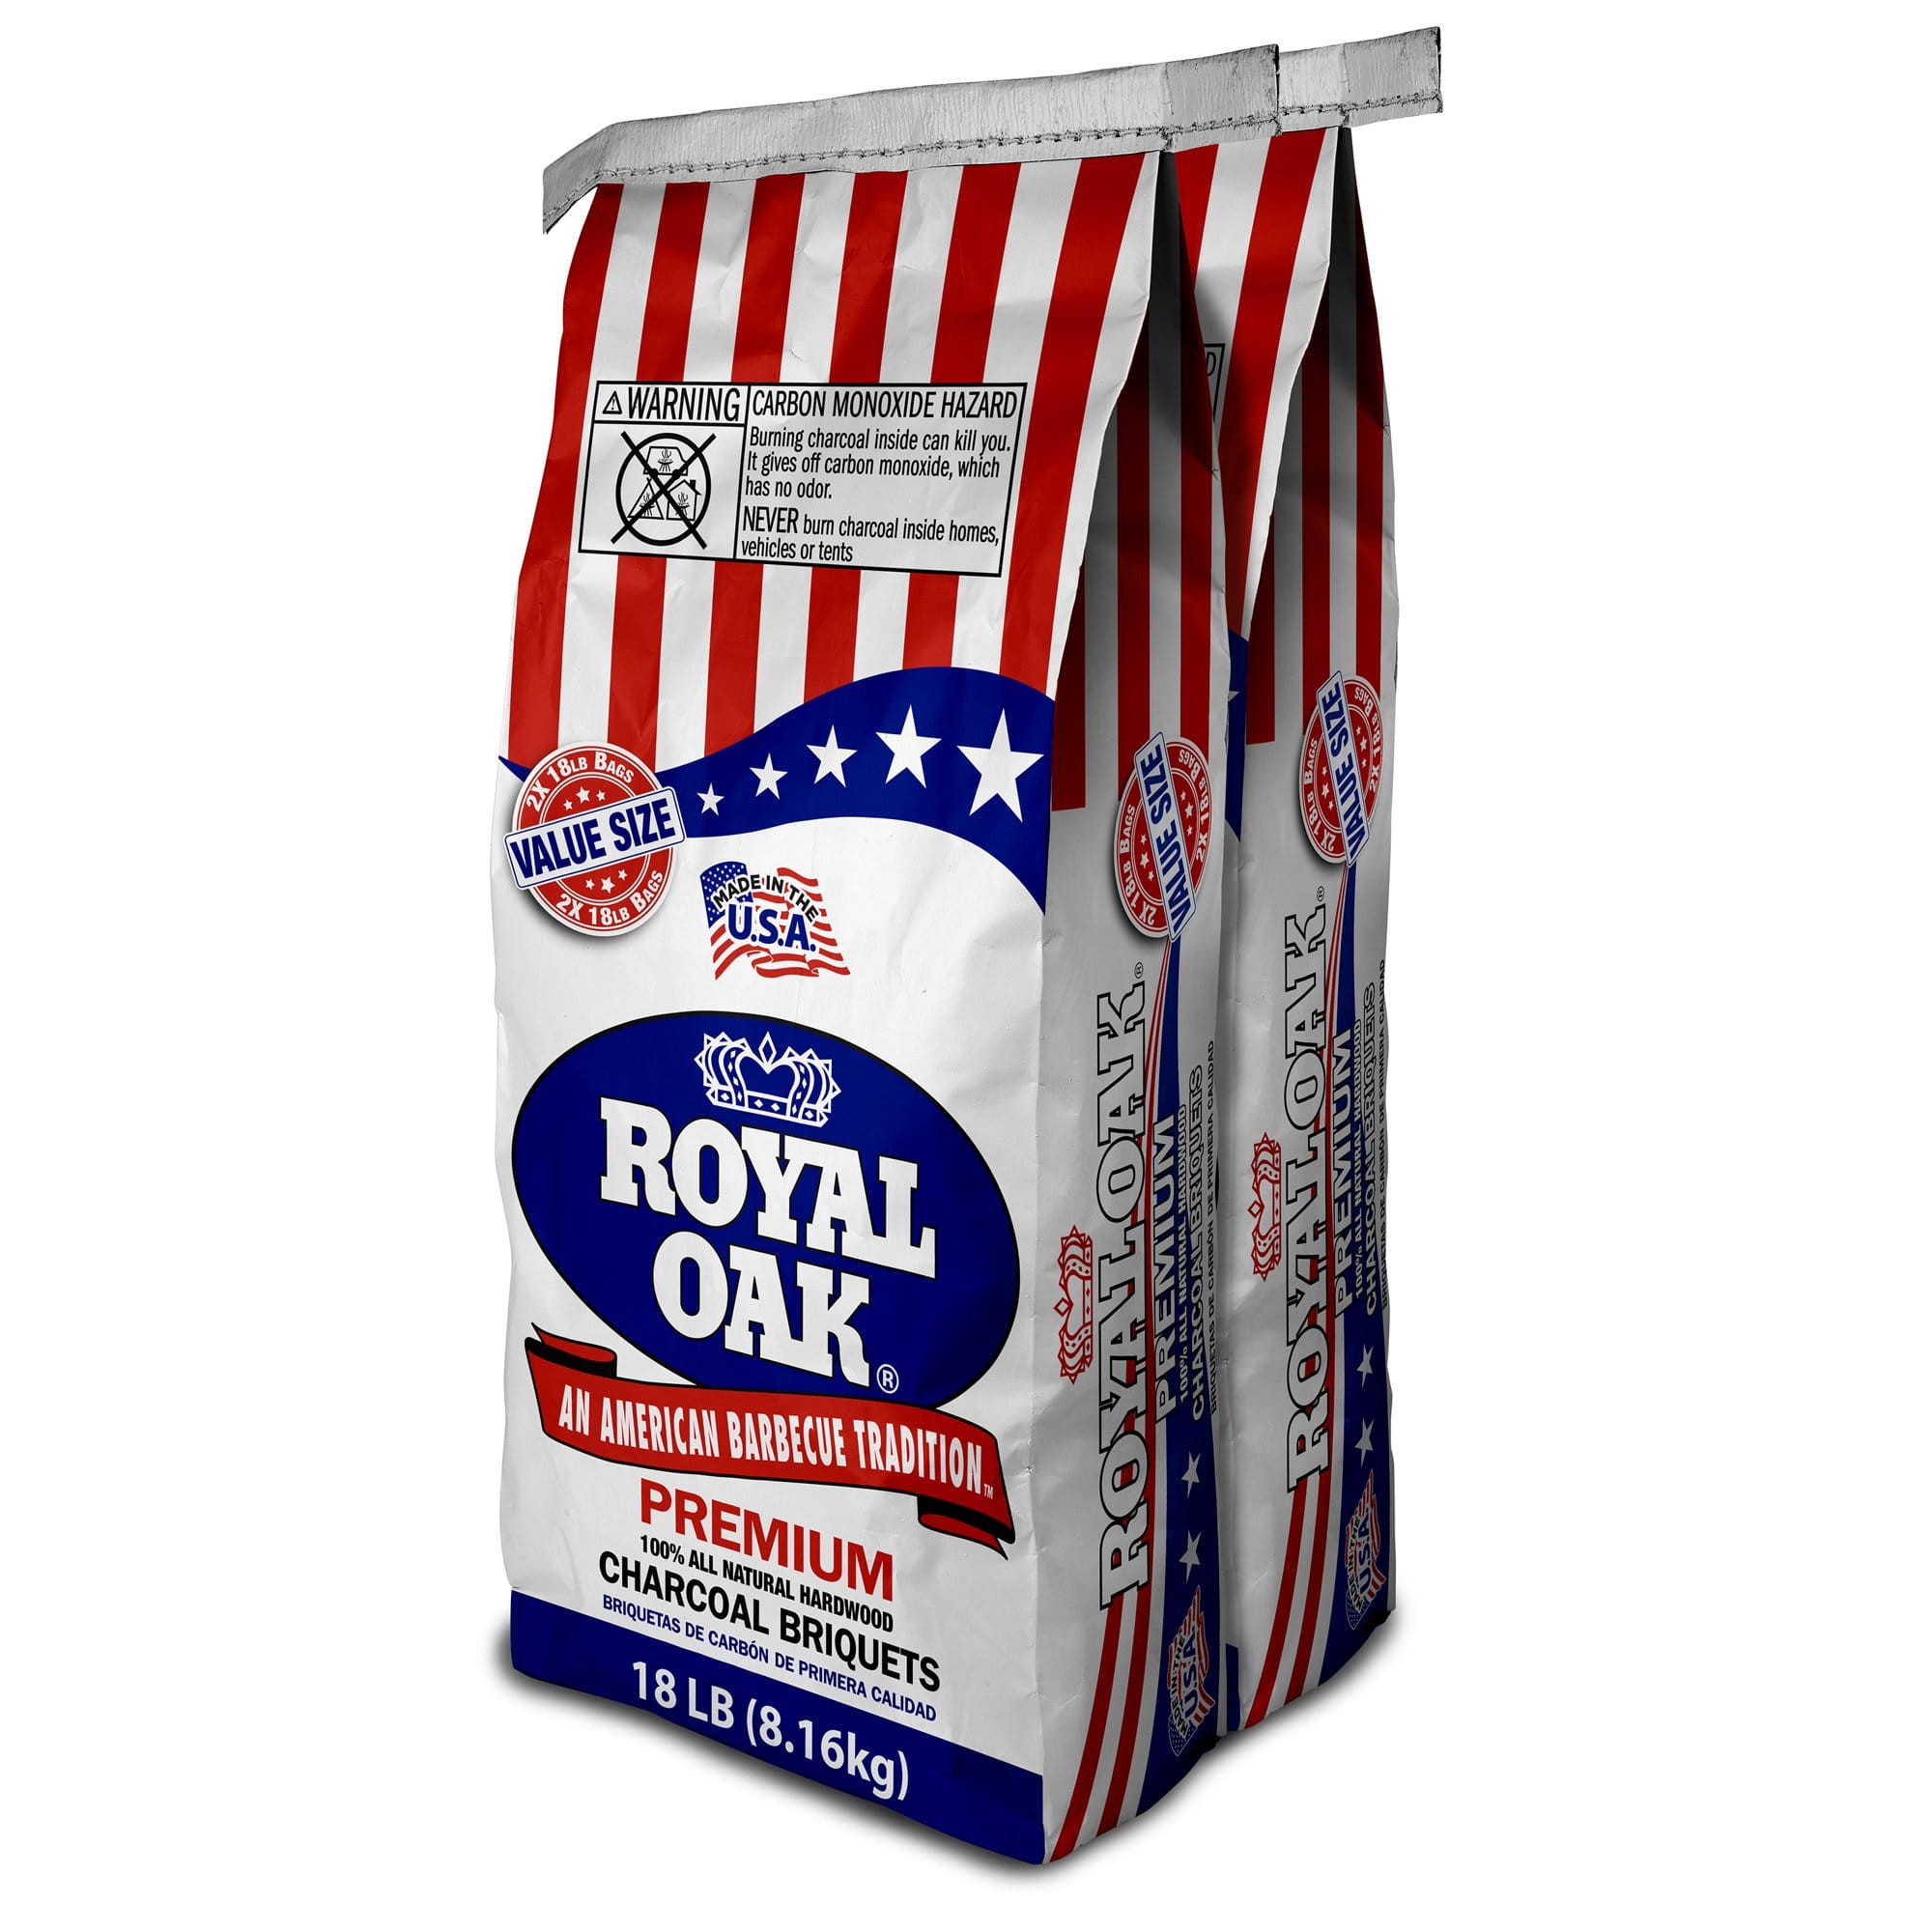 Lowes: Kingsford Original Charcoal Briquettes BBQ Charcoal for Grilling – 20 Pounds Each (Pack of 2) $16.88/Walmart: Royal Oak All Natural Charcoal Briquets, 18 Lb Pack of 2 $8.88